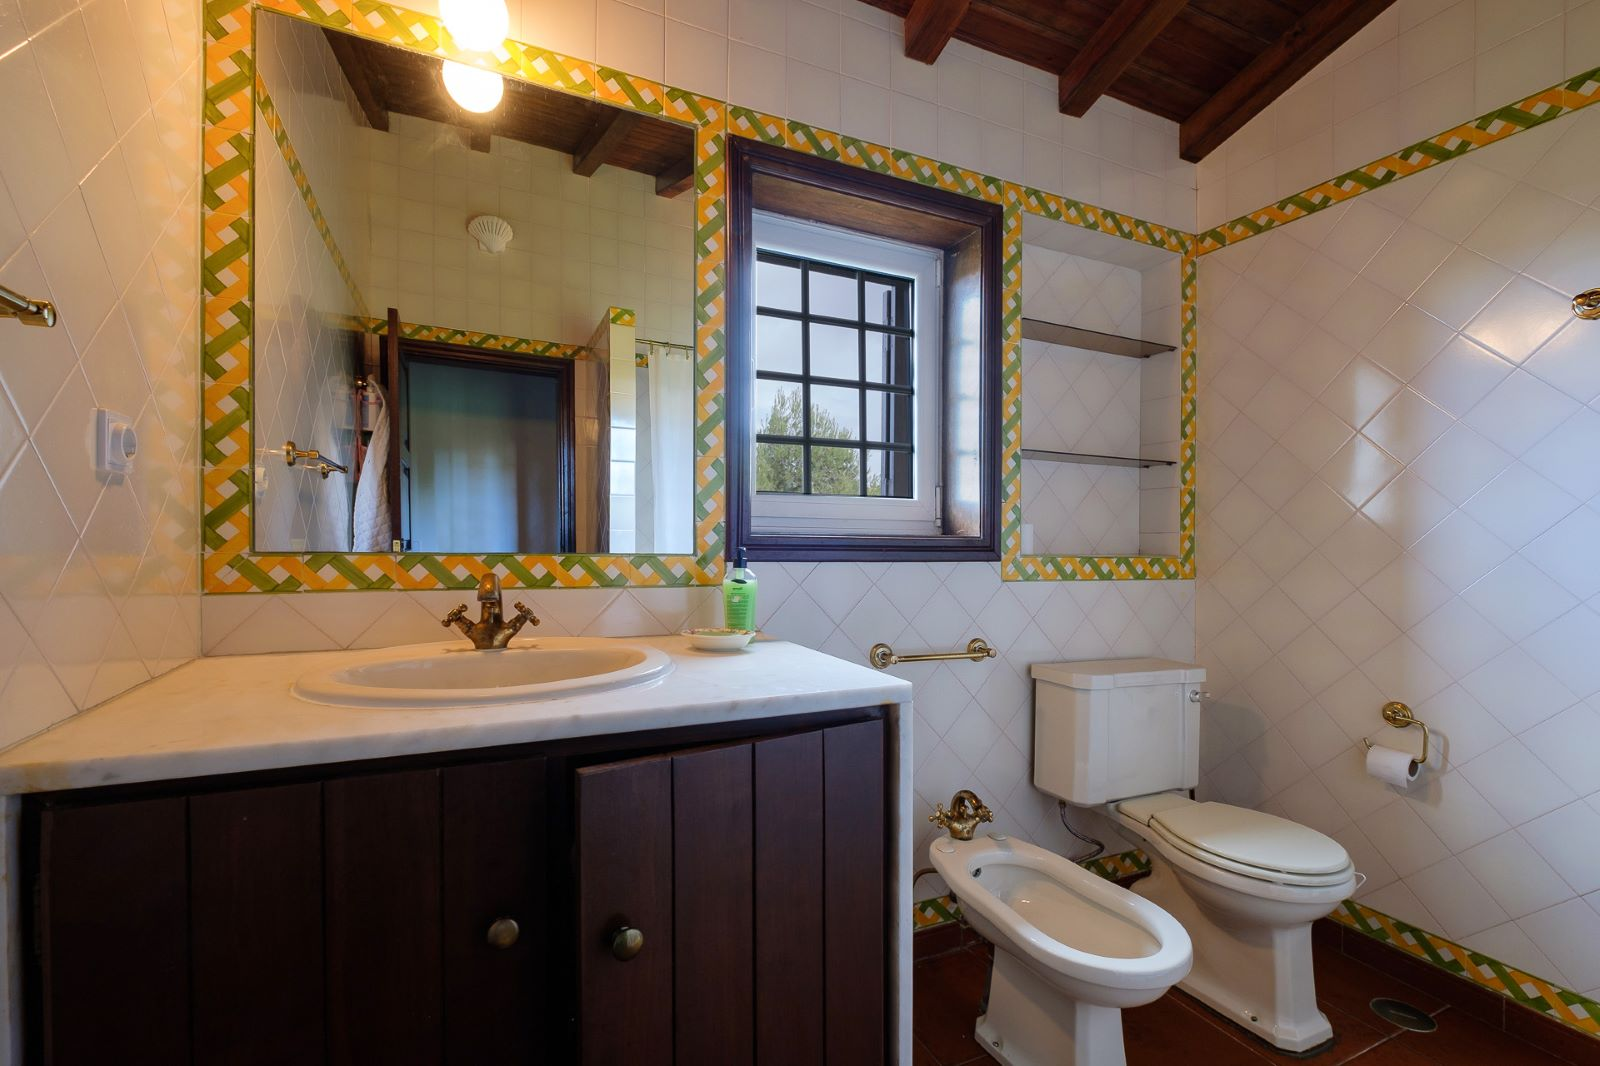 8 BEDROOM COUNTRY HOUSE WITH POOL, IN SINTRA